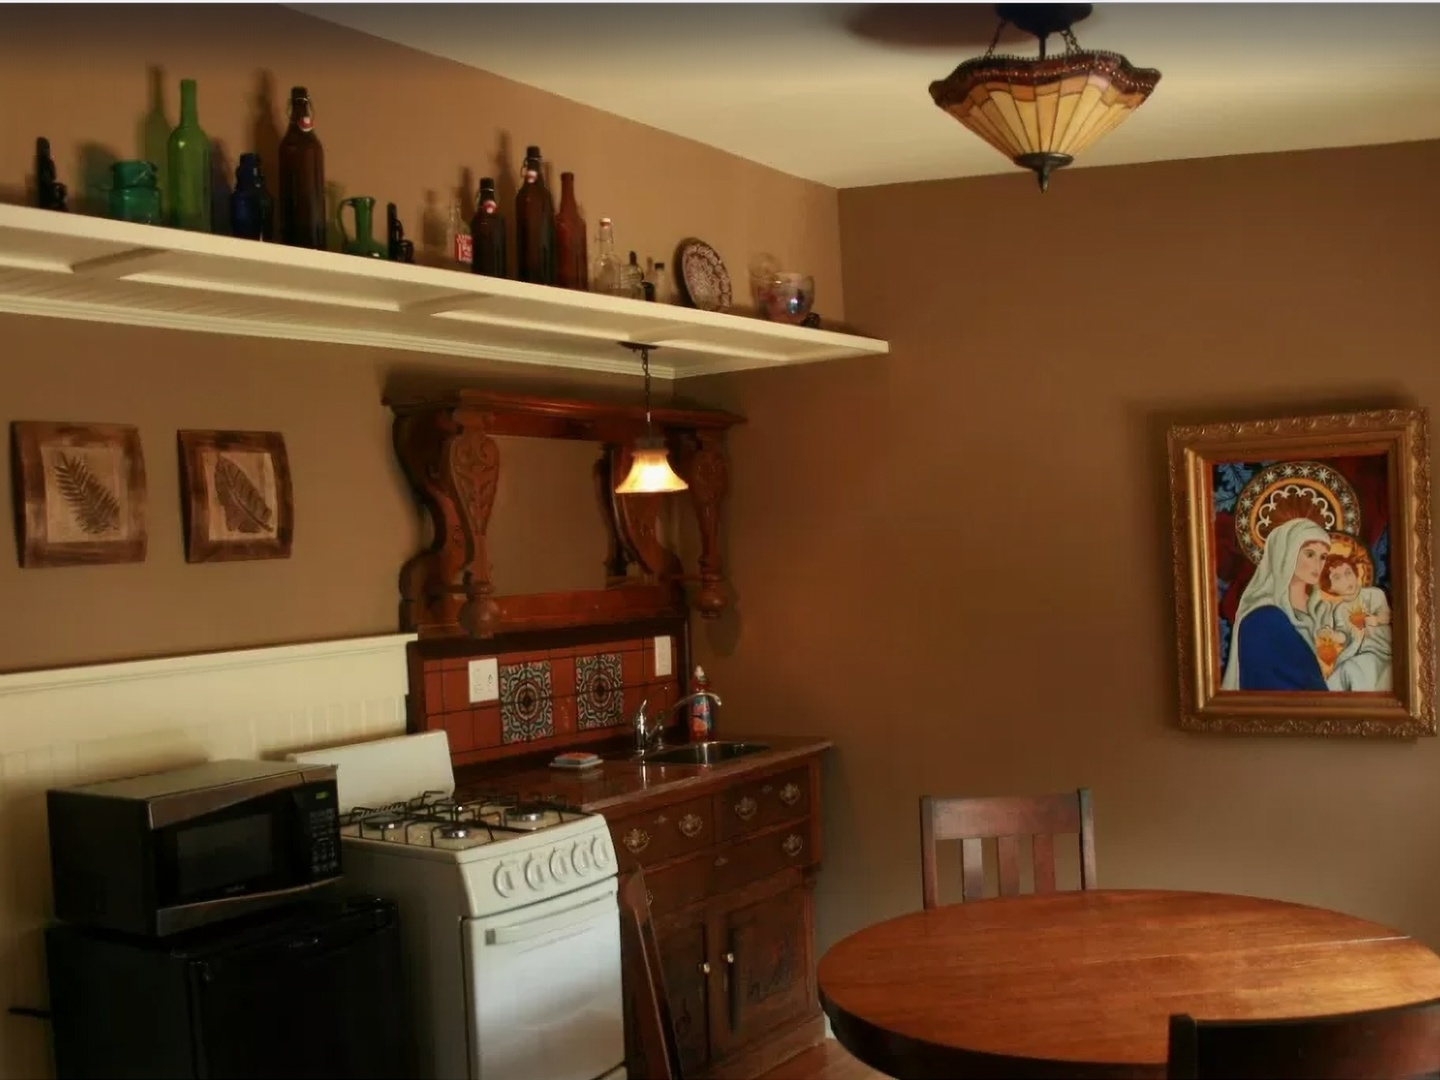 A kitchen with a table in a room at The Sea Gypsy.